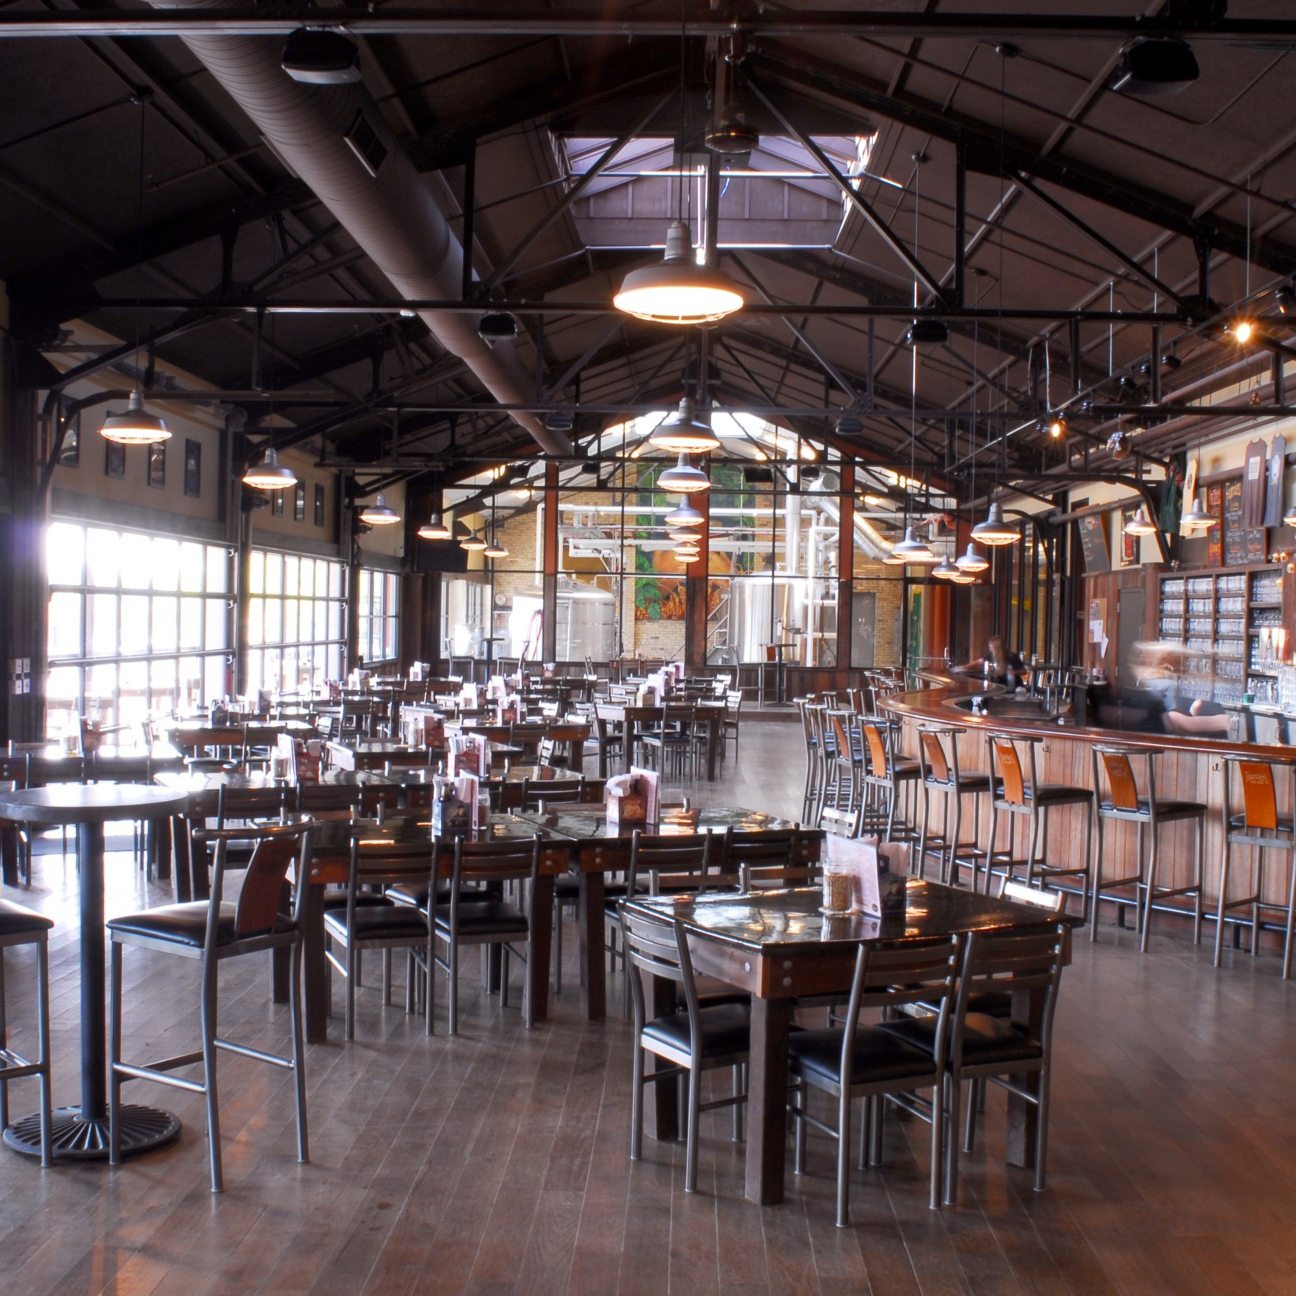 Founders Grand Rapids taproom interior looking south showing tables and chairs and a bar to the right